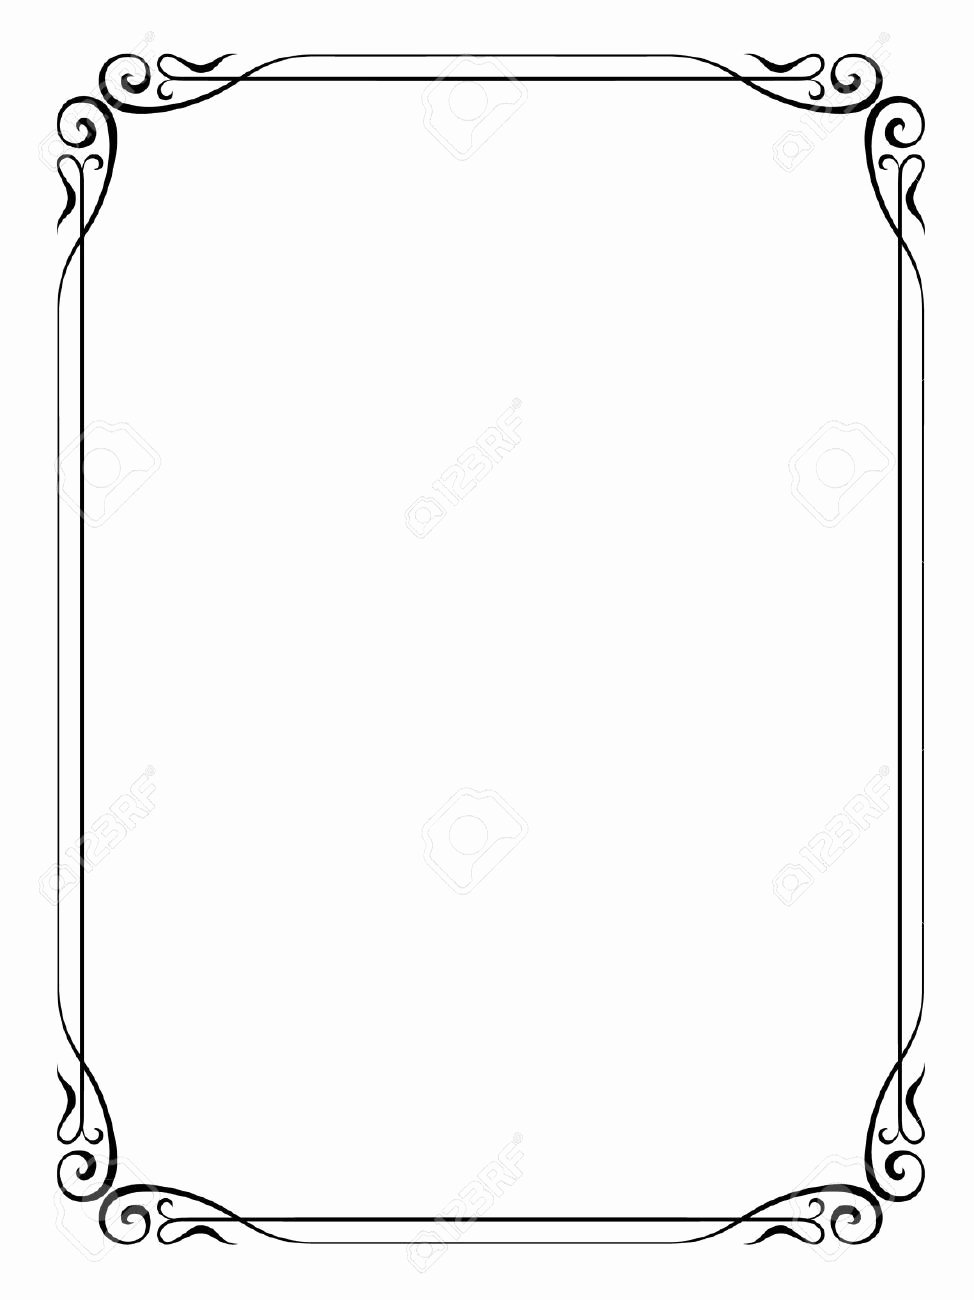 Simple White Paper Template Elegant formal Black and White Borders for Word Google Search